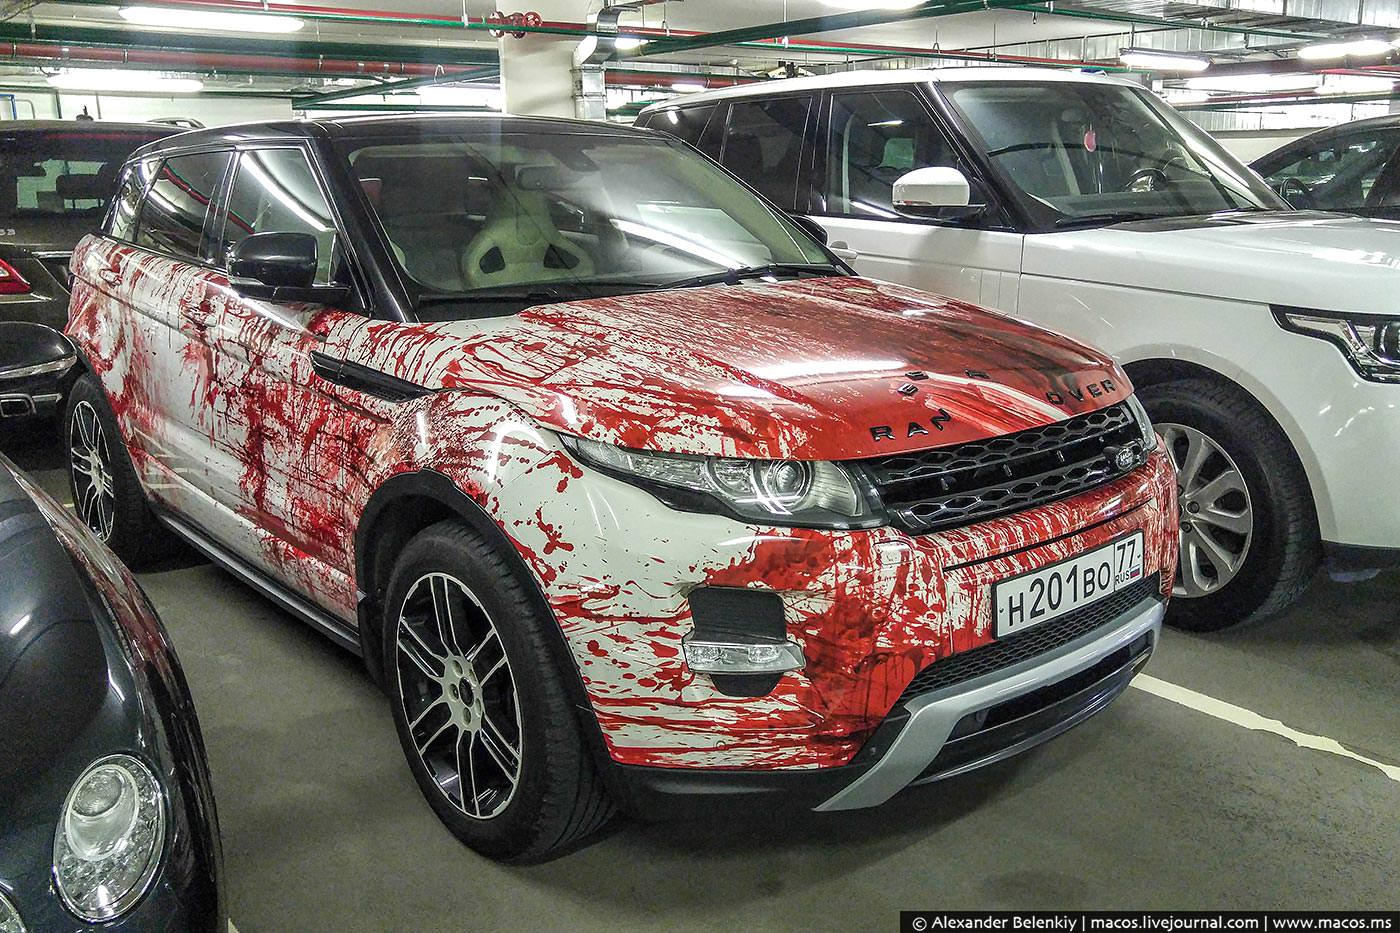 range rover evoque gets bloody makeover in russia as halloween costume autoevolution. Black Bedroom Furniture Sets. Home Design Ideas